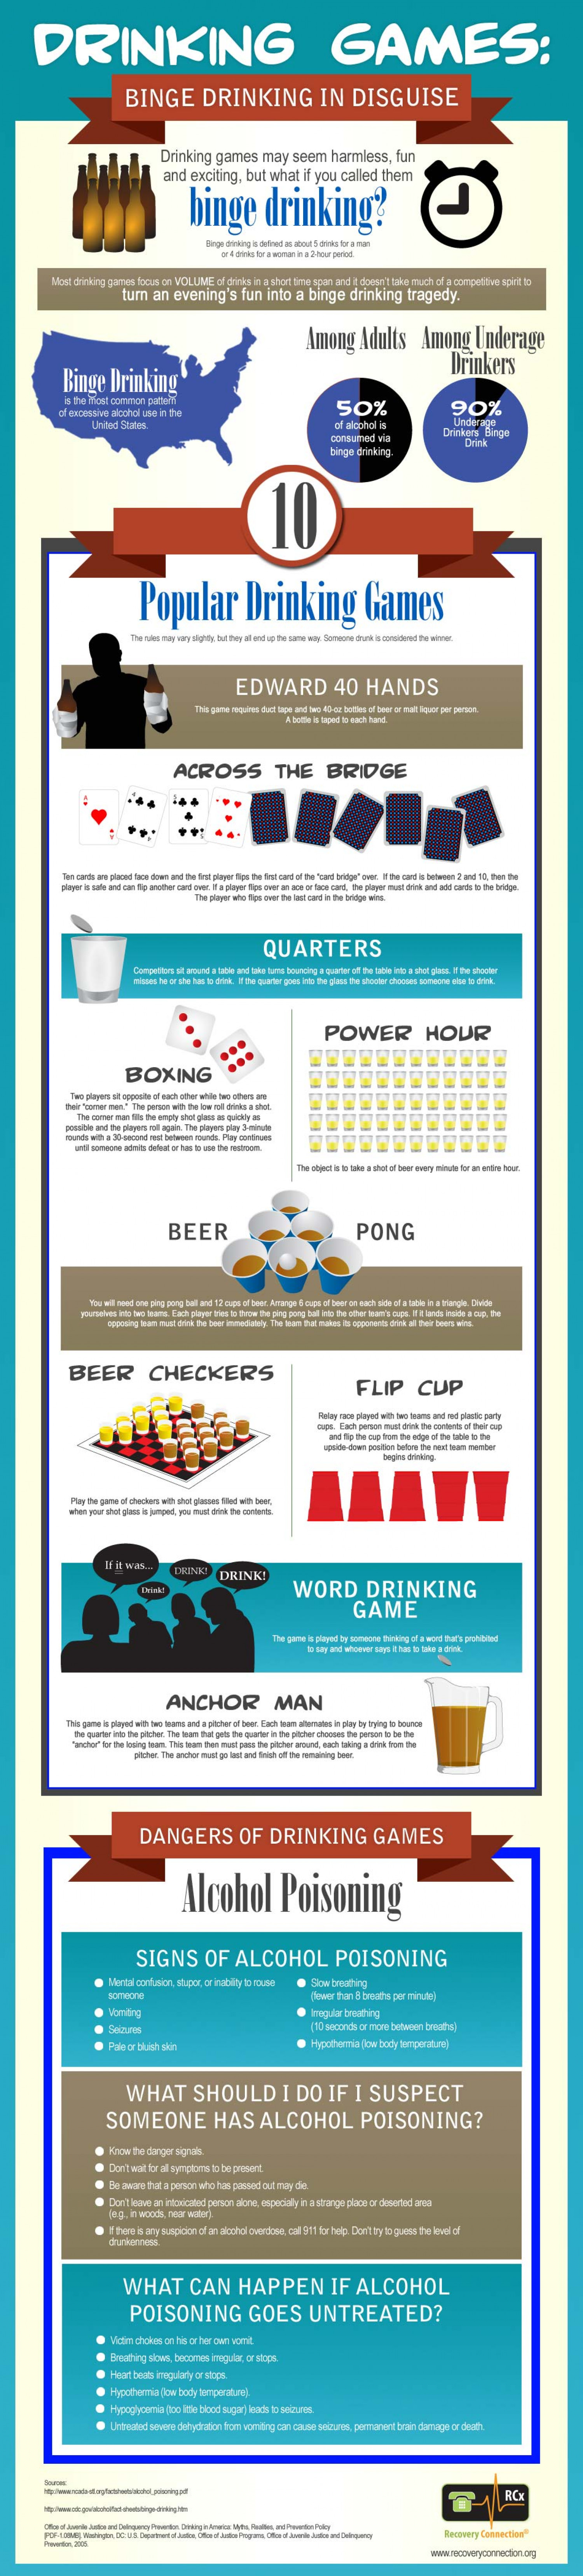 Drinking Games: Binge Drinking Alcohol in Disguise Infographic